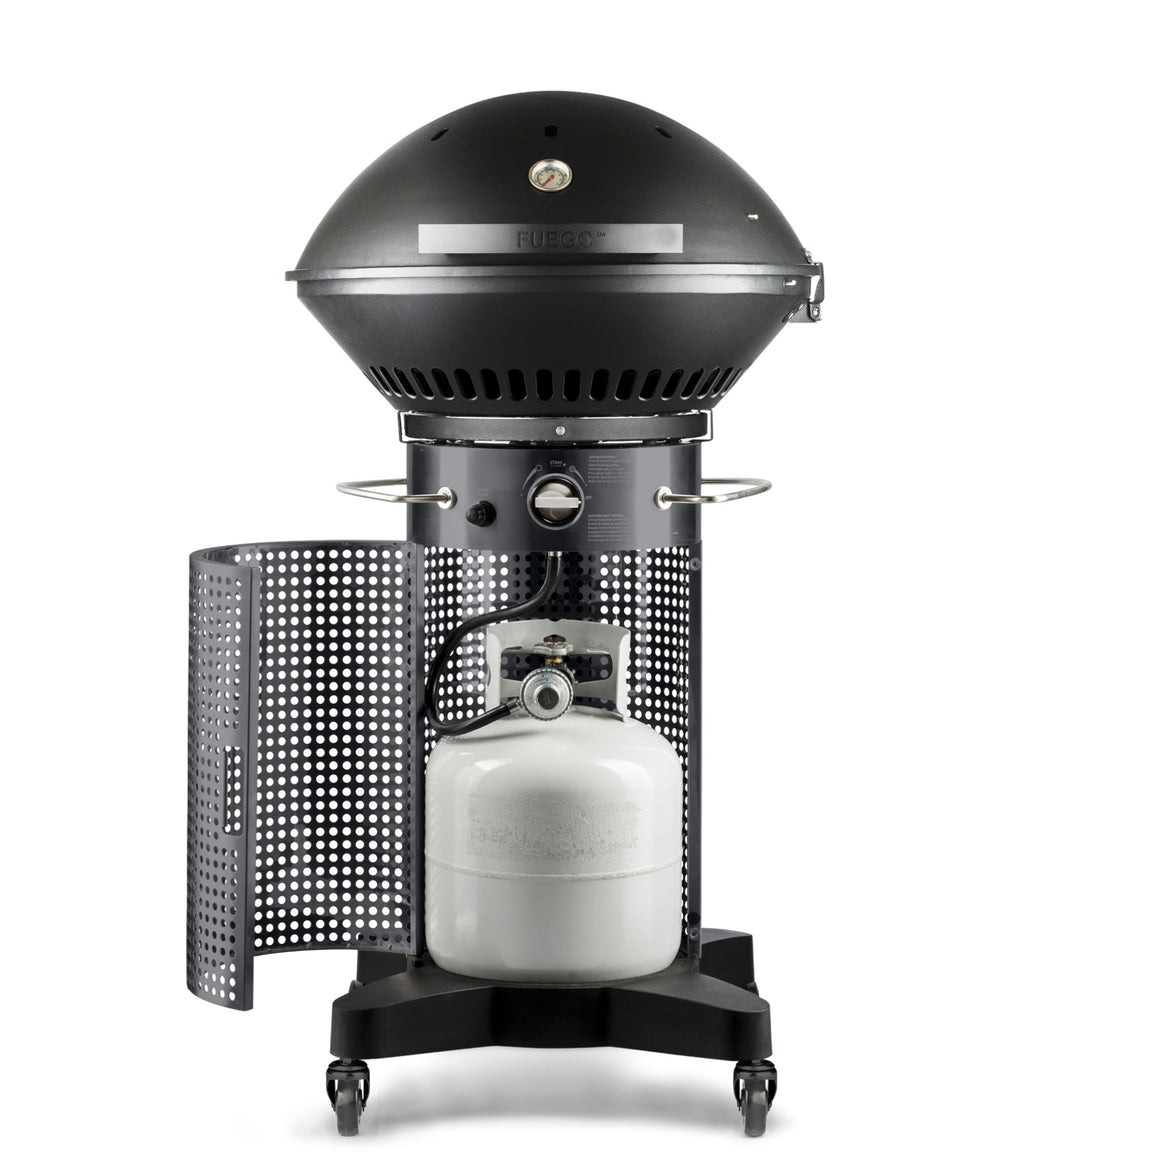 fuego professional f24c | fuego element portable gas grill | portable outdoor gas grill | fuego element gas grill | gas grill | portable grills